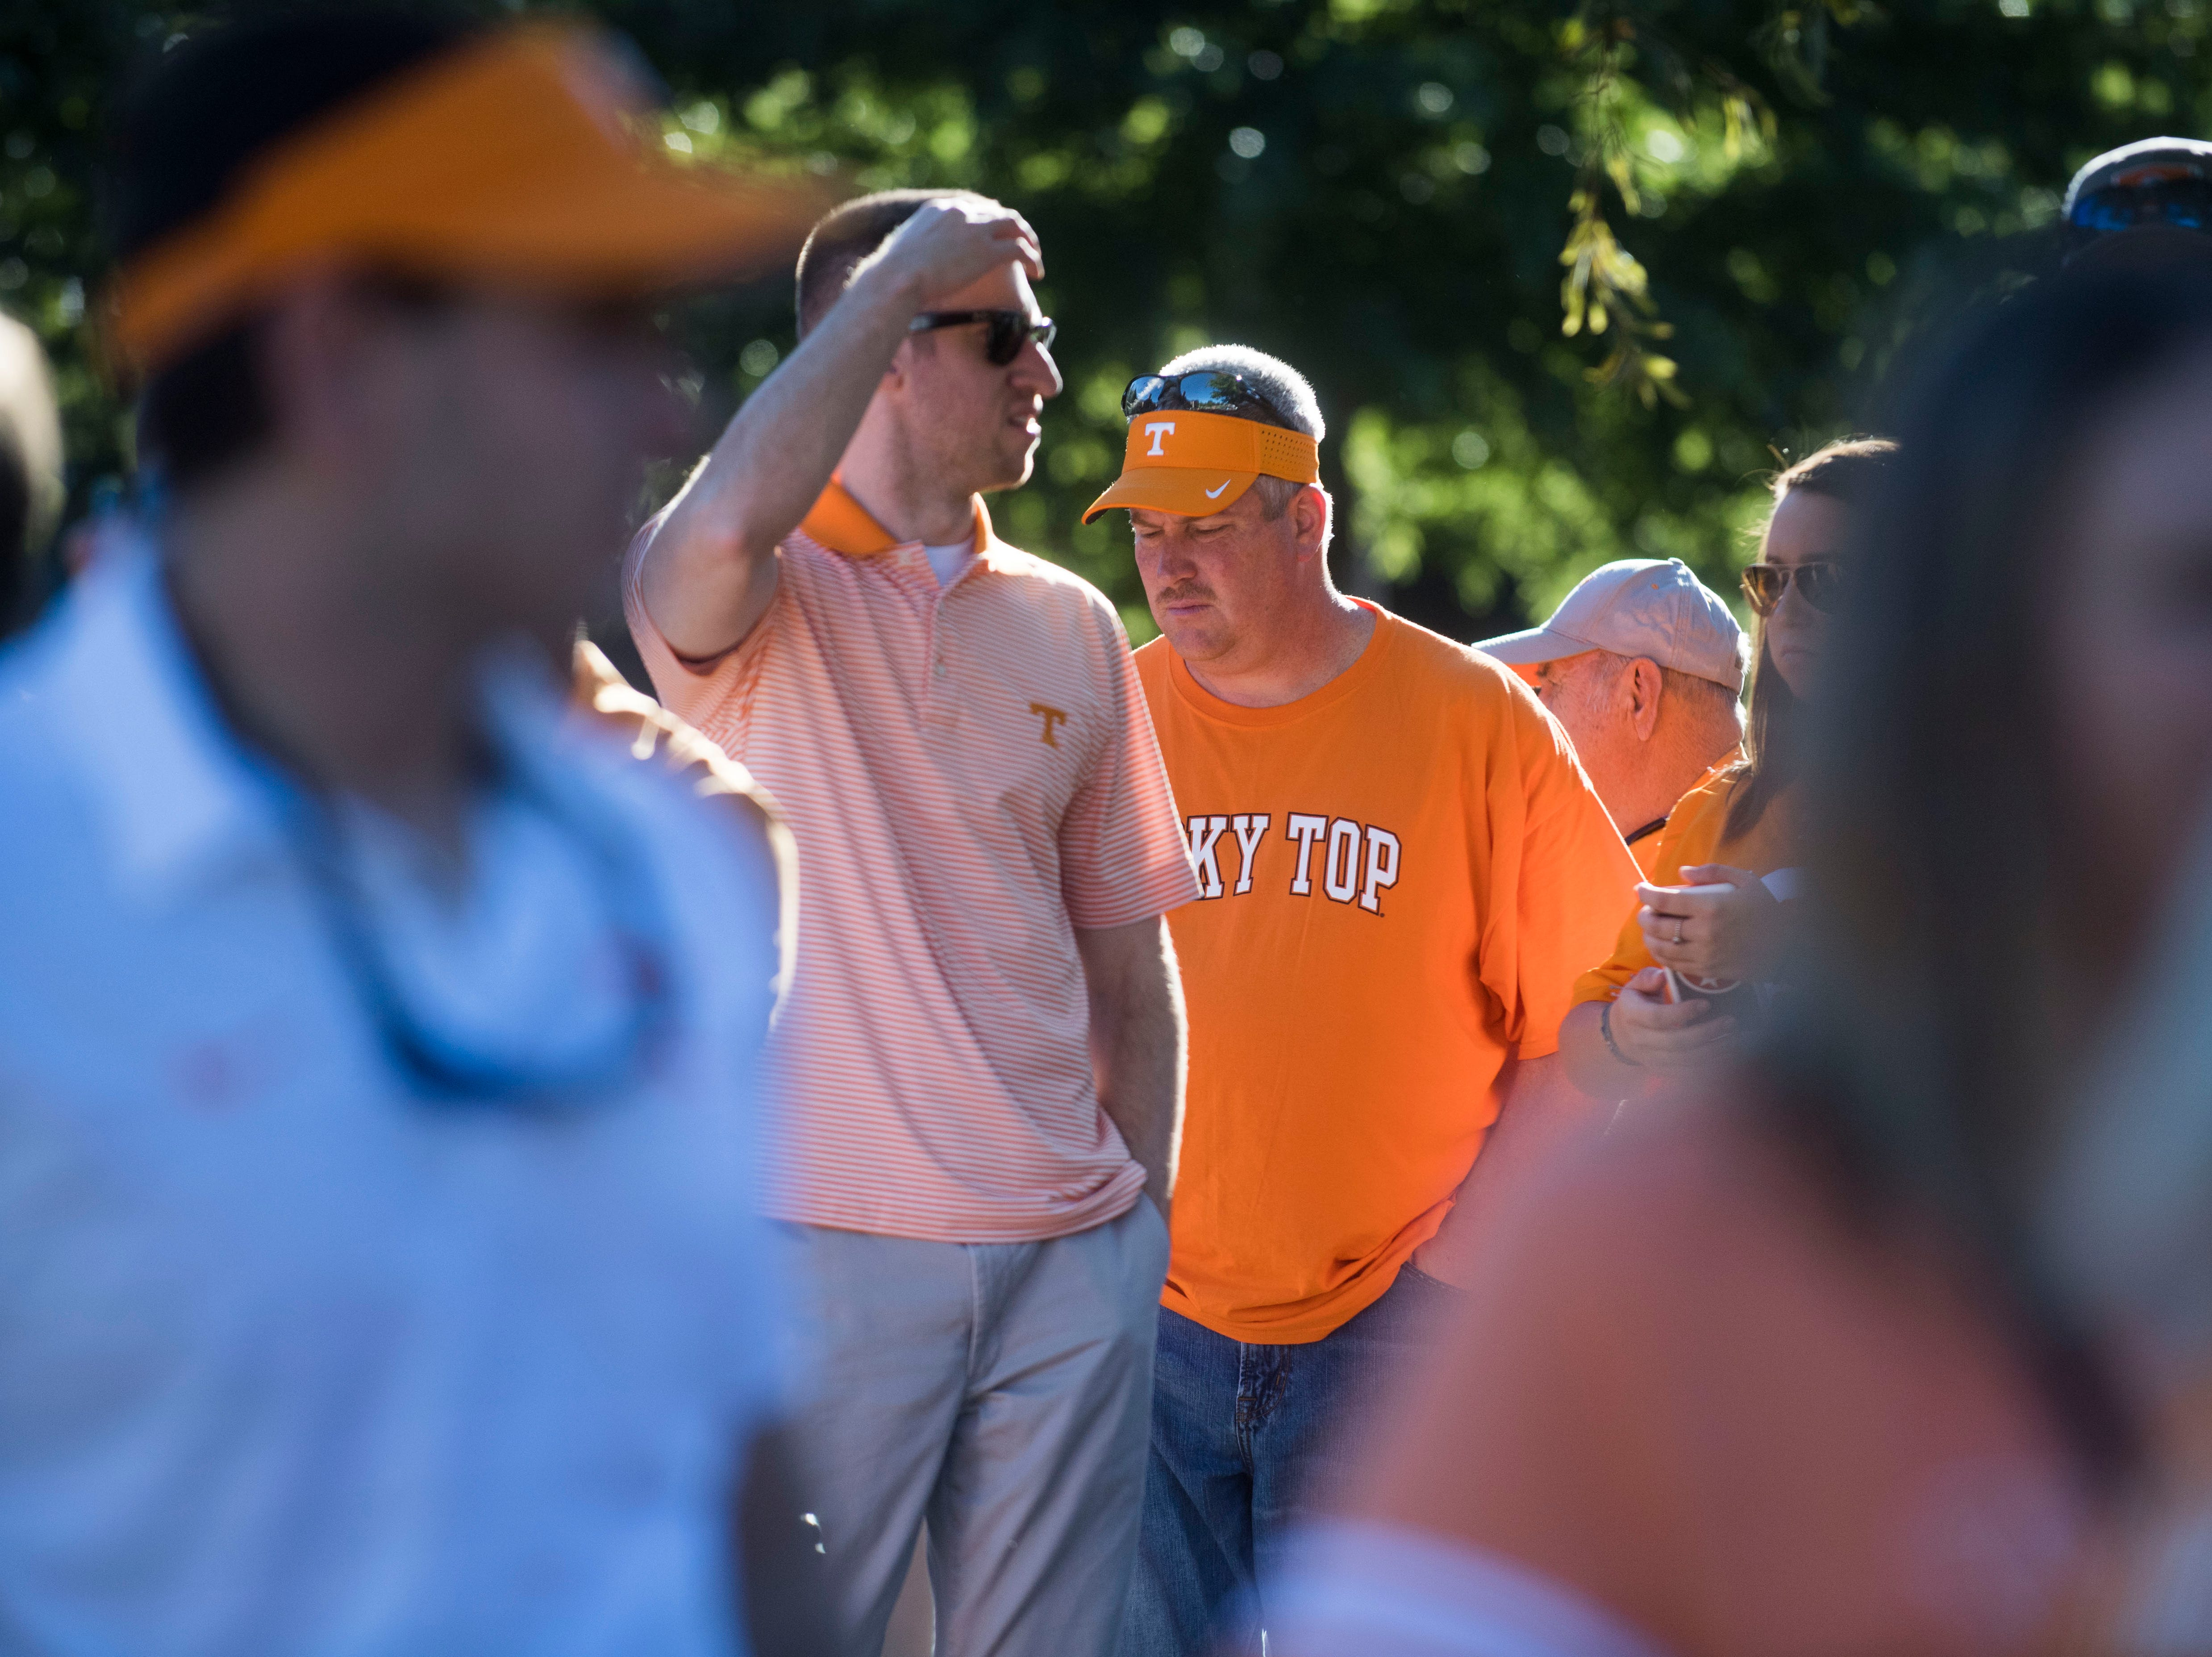 Vols fans congregate before a game between Tennessee and Auburn at Jordan-Hare Stadium in Auburn, Ala. Saturday, Oct. 13, 2018.